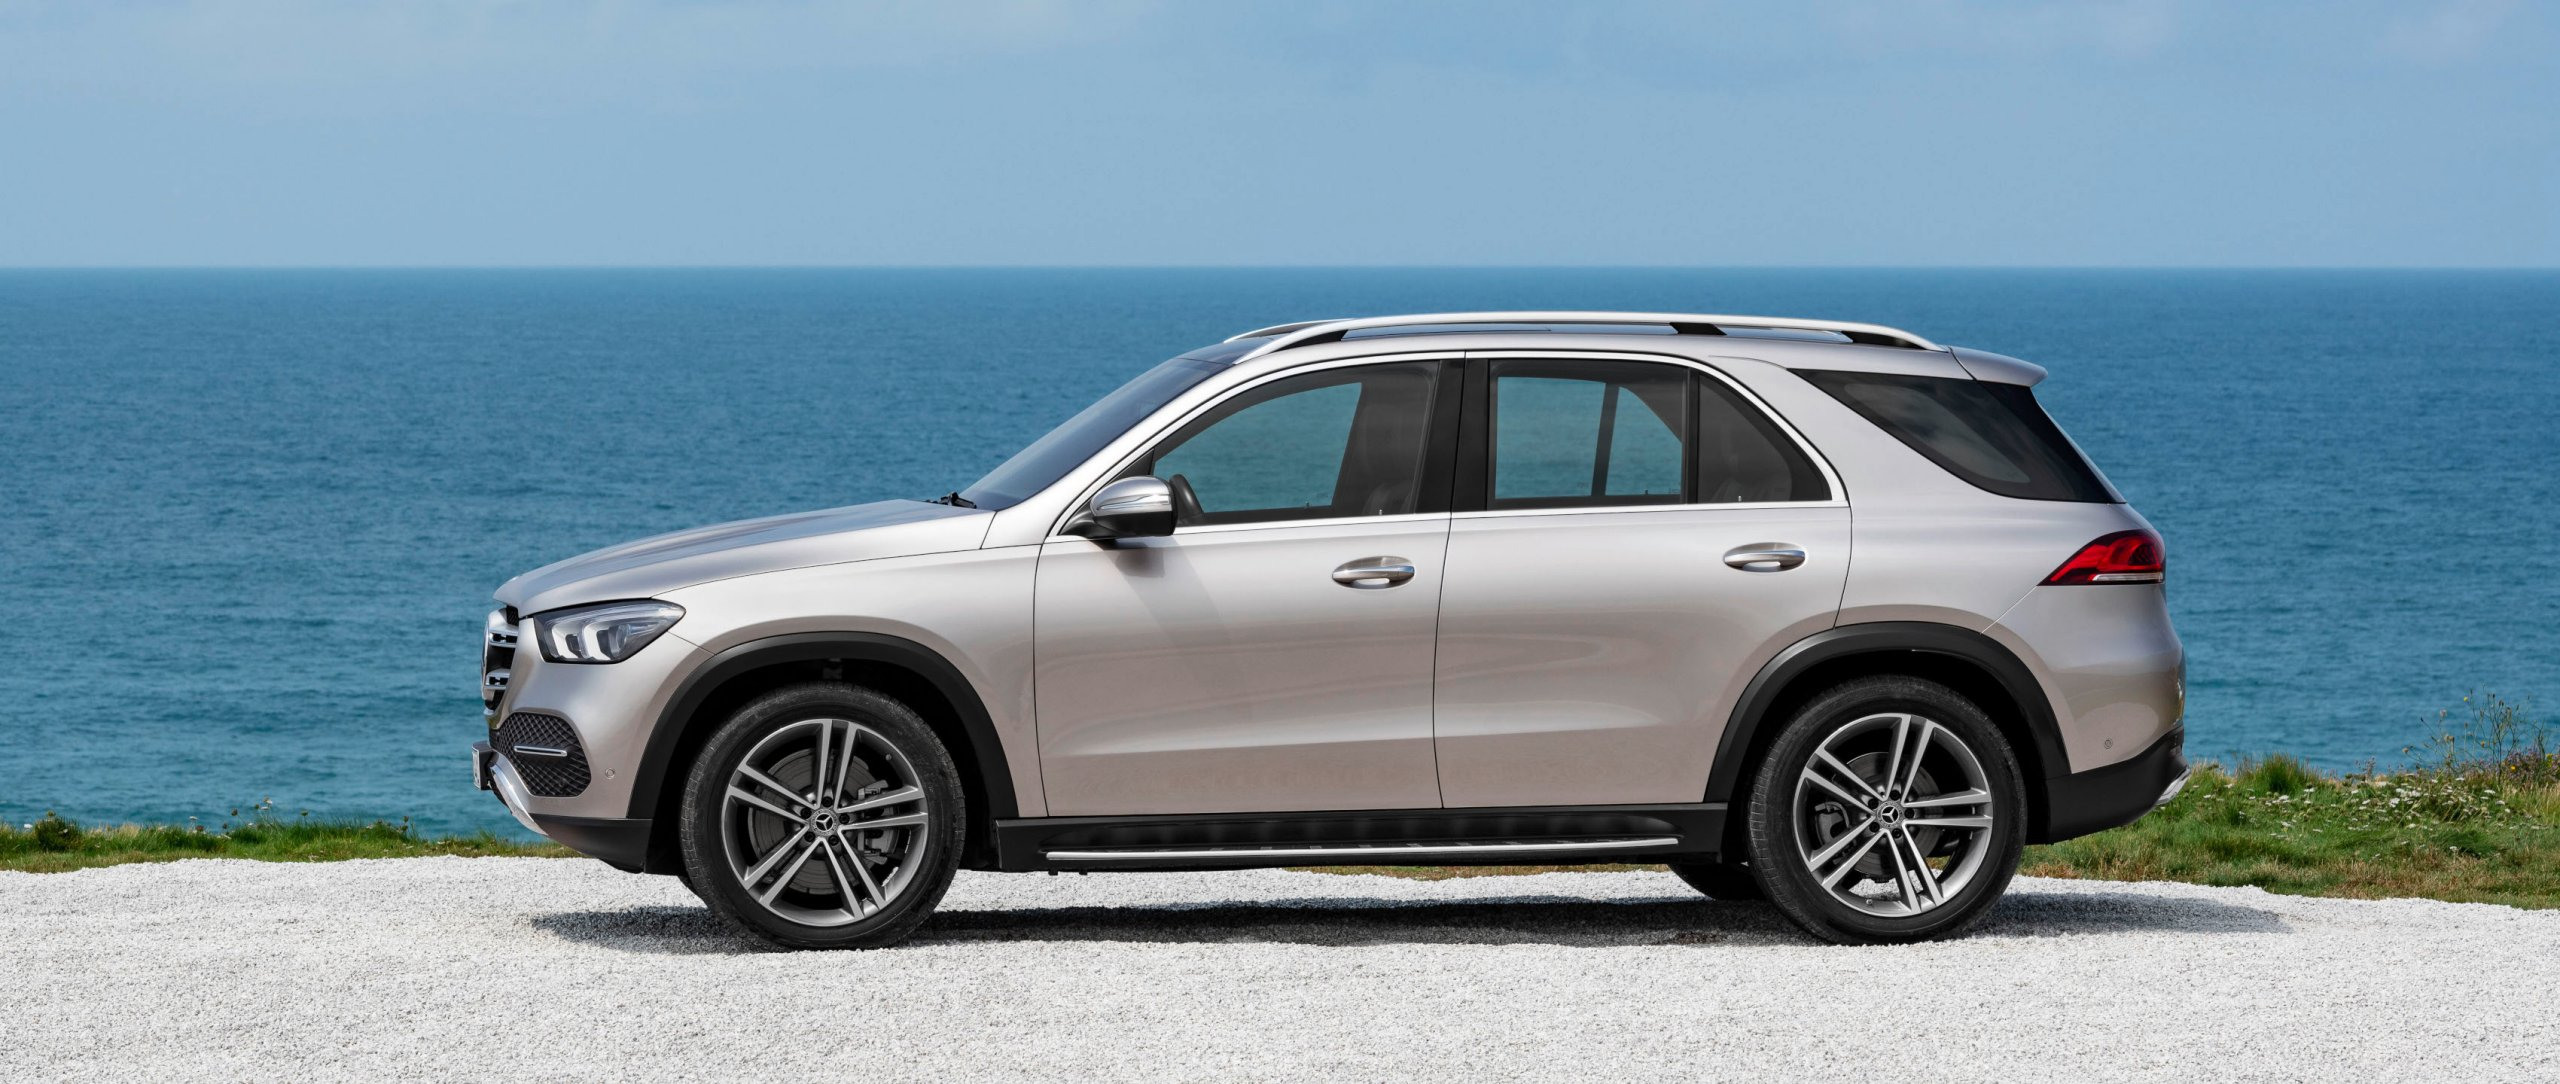 The Mercedes-Benz GLE 450 4MATIC 2018 (W 167) in mojave silver.